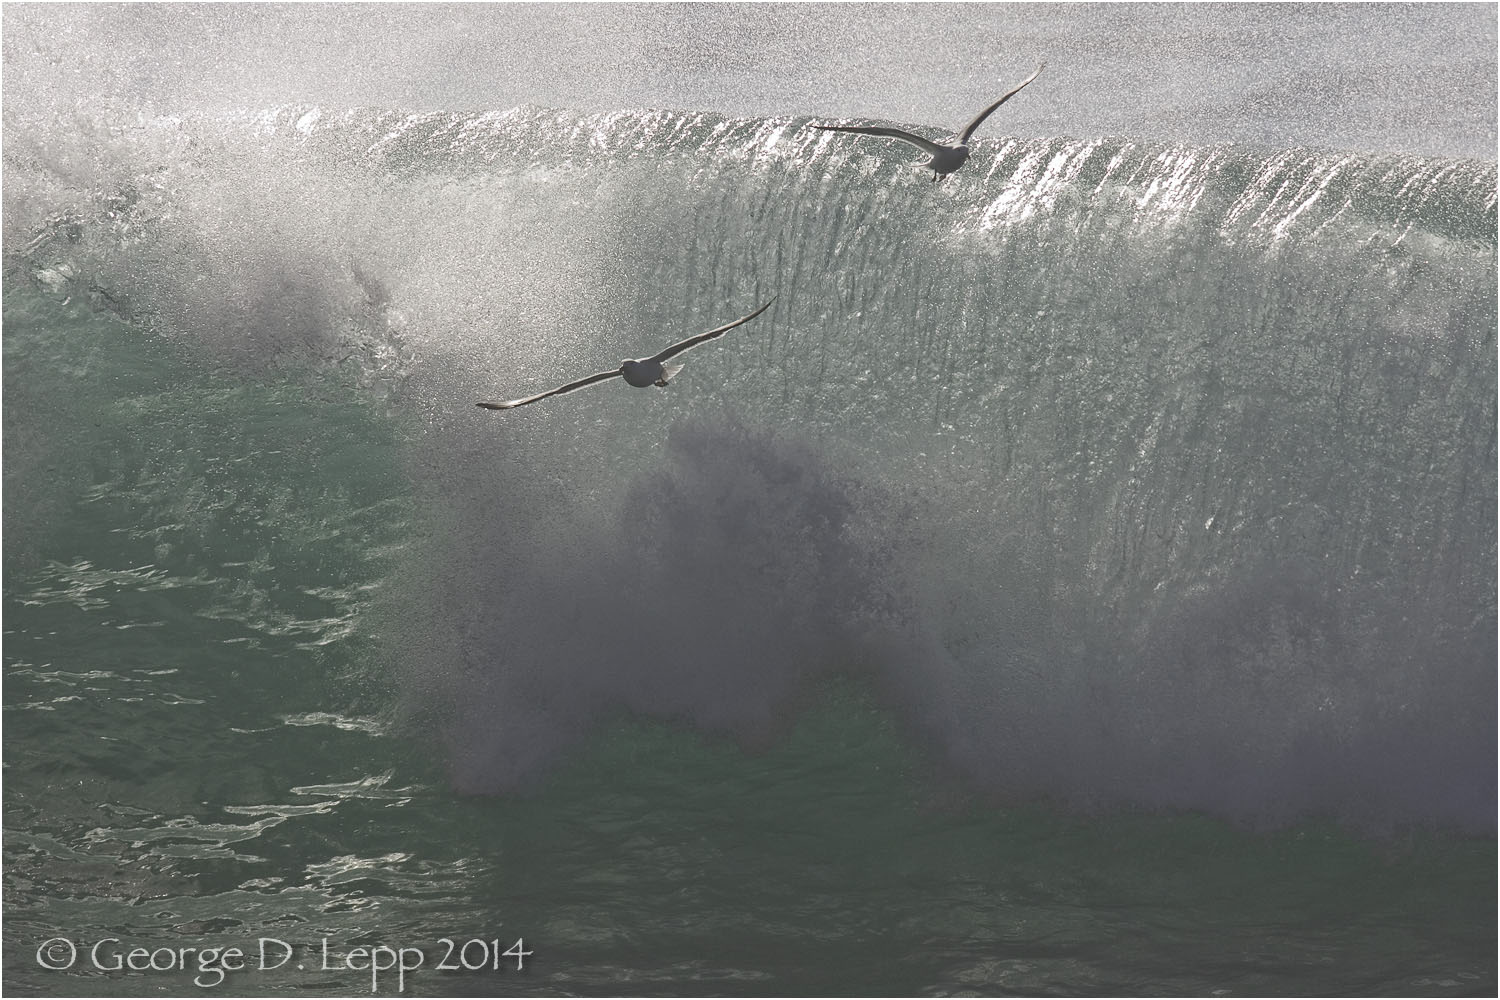 Gulls skimming the waves. © George D. Lepp 2014 LC-CC-CG-0001